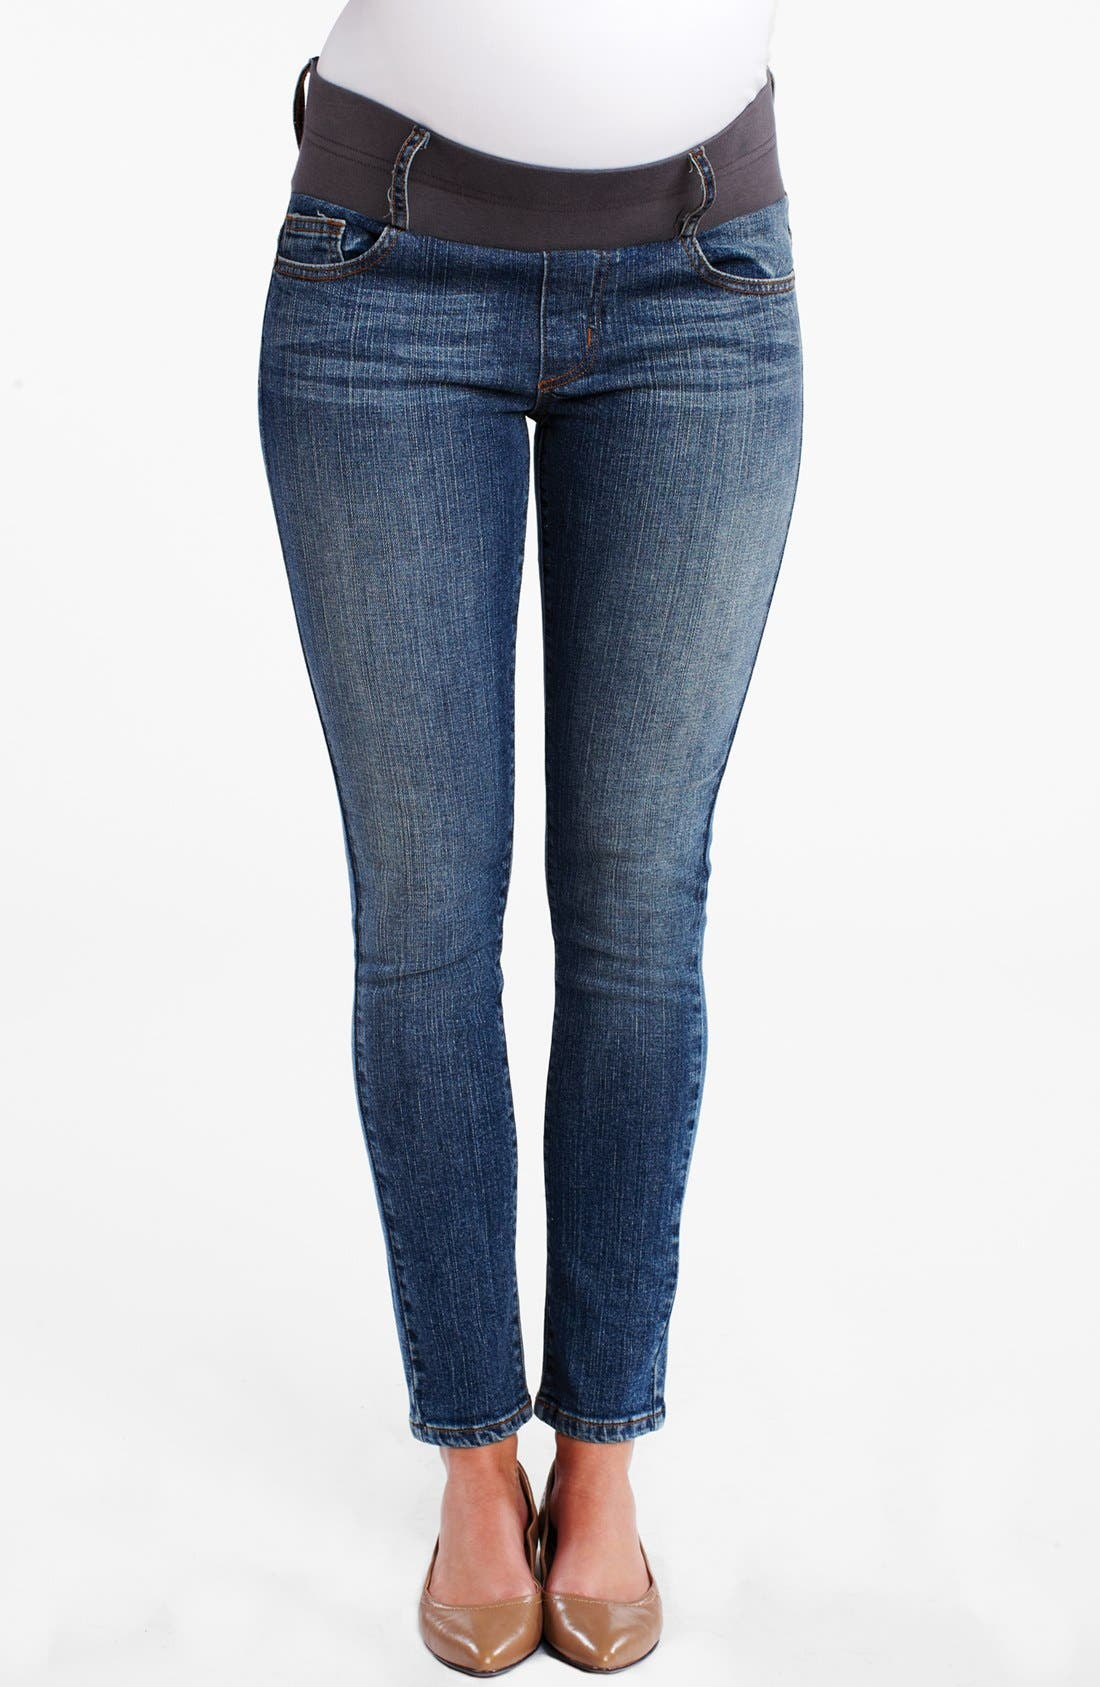 Alternate Image 1 Selected - Maternal America Maternity Ankle Skinny Jeans